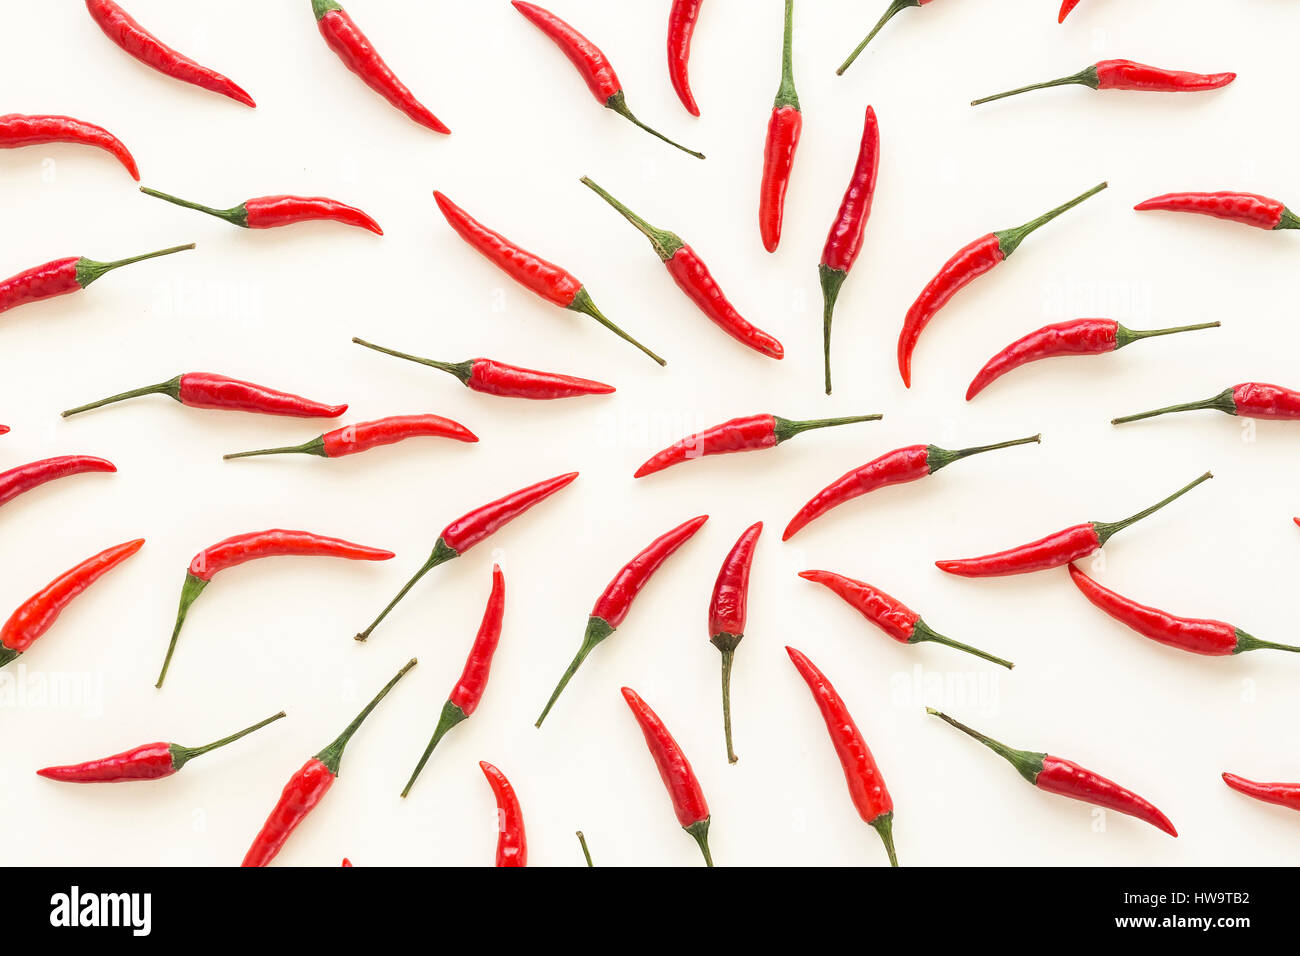 A lot of red hot chili peppers on a white background. a concept hot spice for food. flat lay. Concept red food, - Stock Image